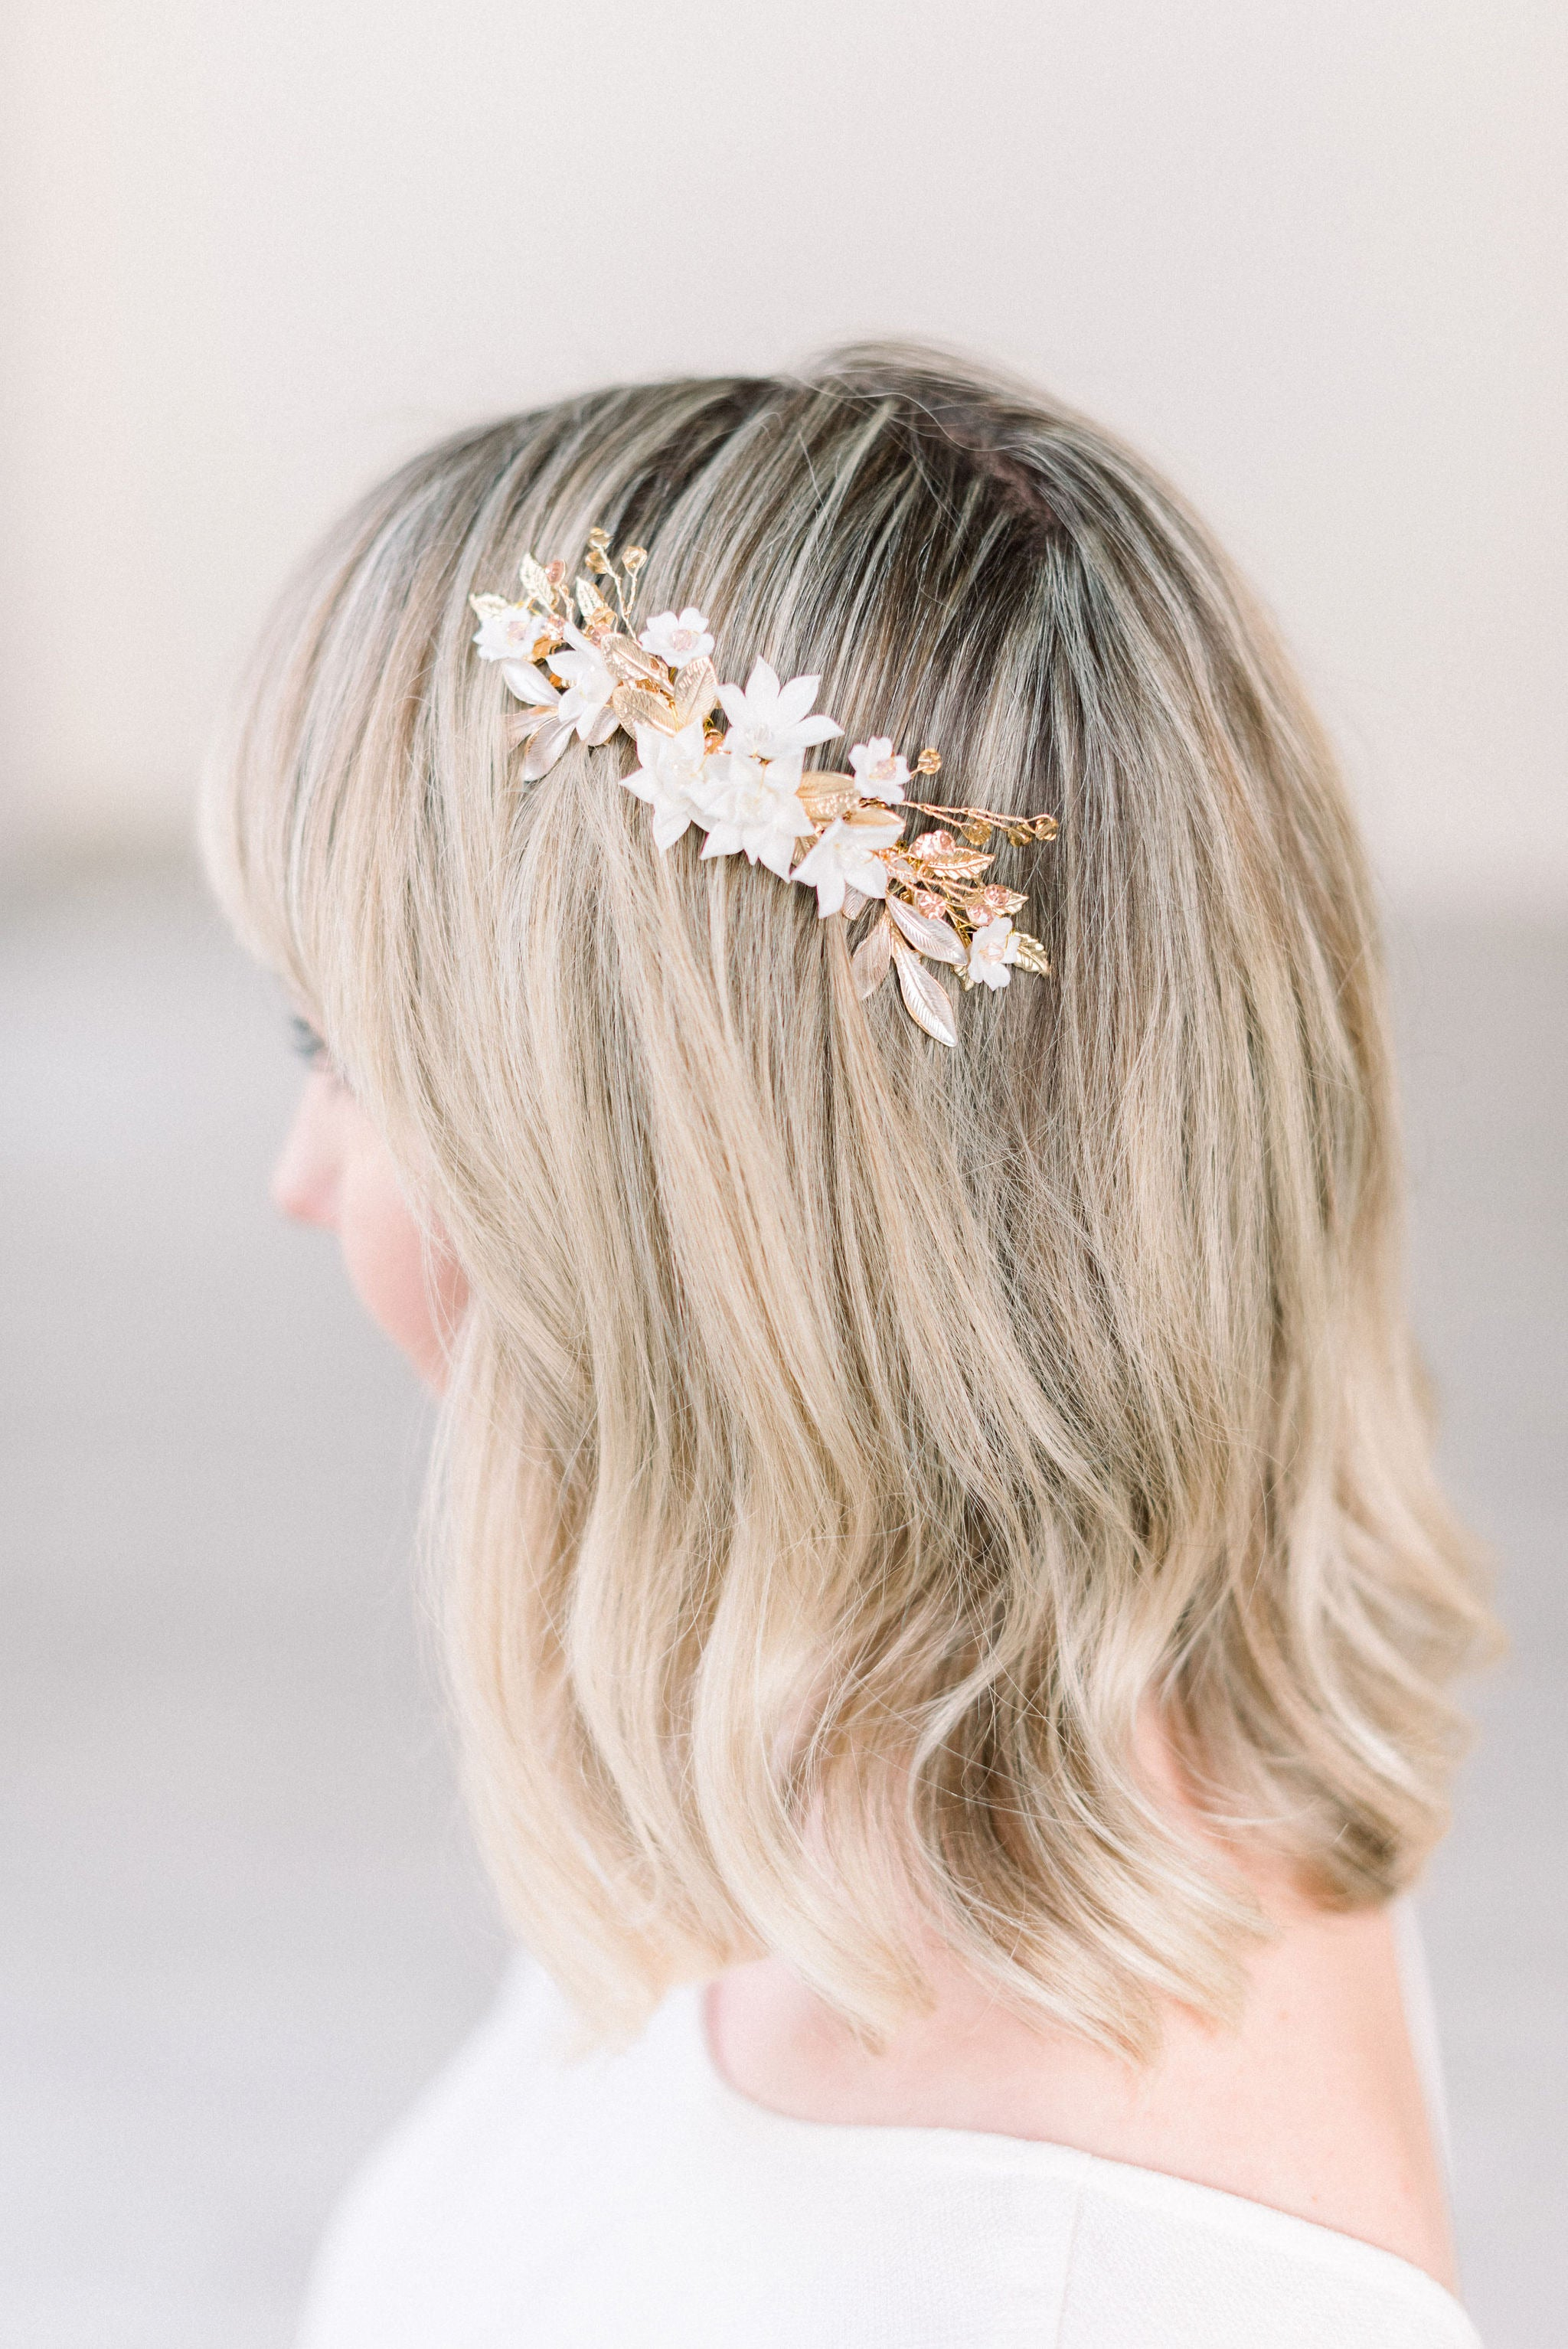 Blush and gold floral hair comb - style 5002 - Ready to ship - Tessa Kim